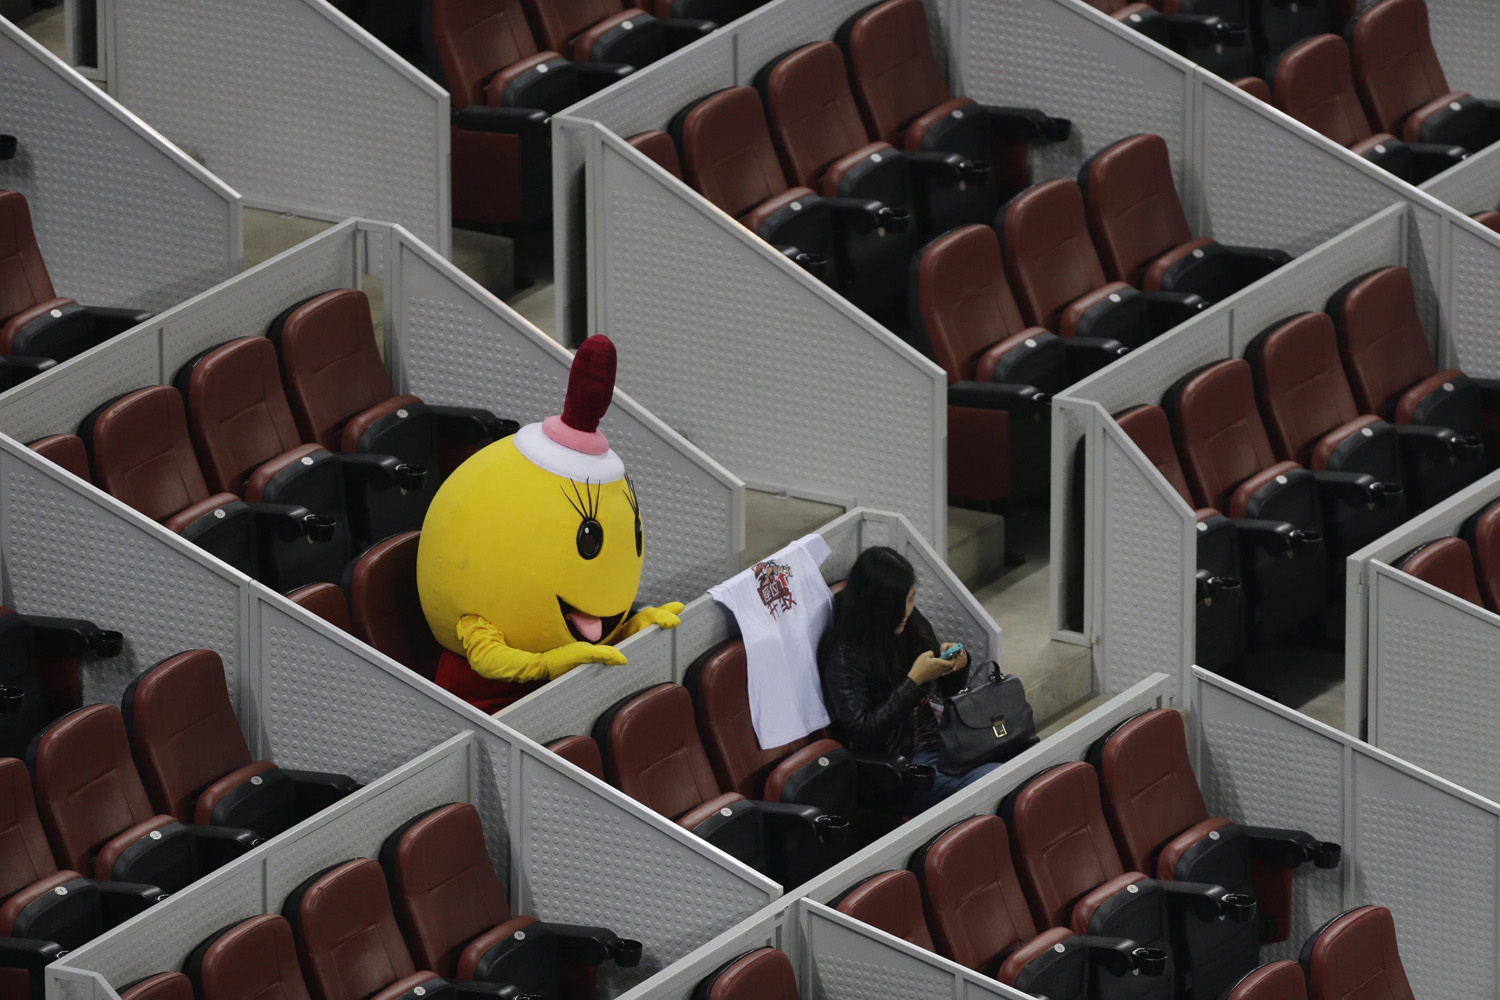 A costumed mascot waits for the men's quarter-final match between Rafael Nadal of Spain and Martin Klizan of Slovakia at the China Open tennis tournament in Beijing on Oct. 3, 2014.